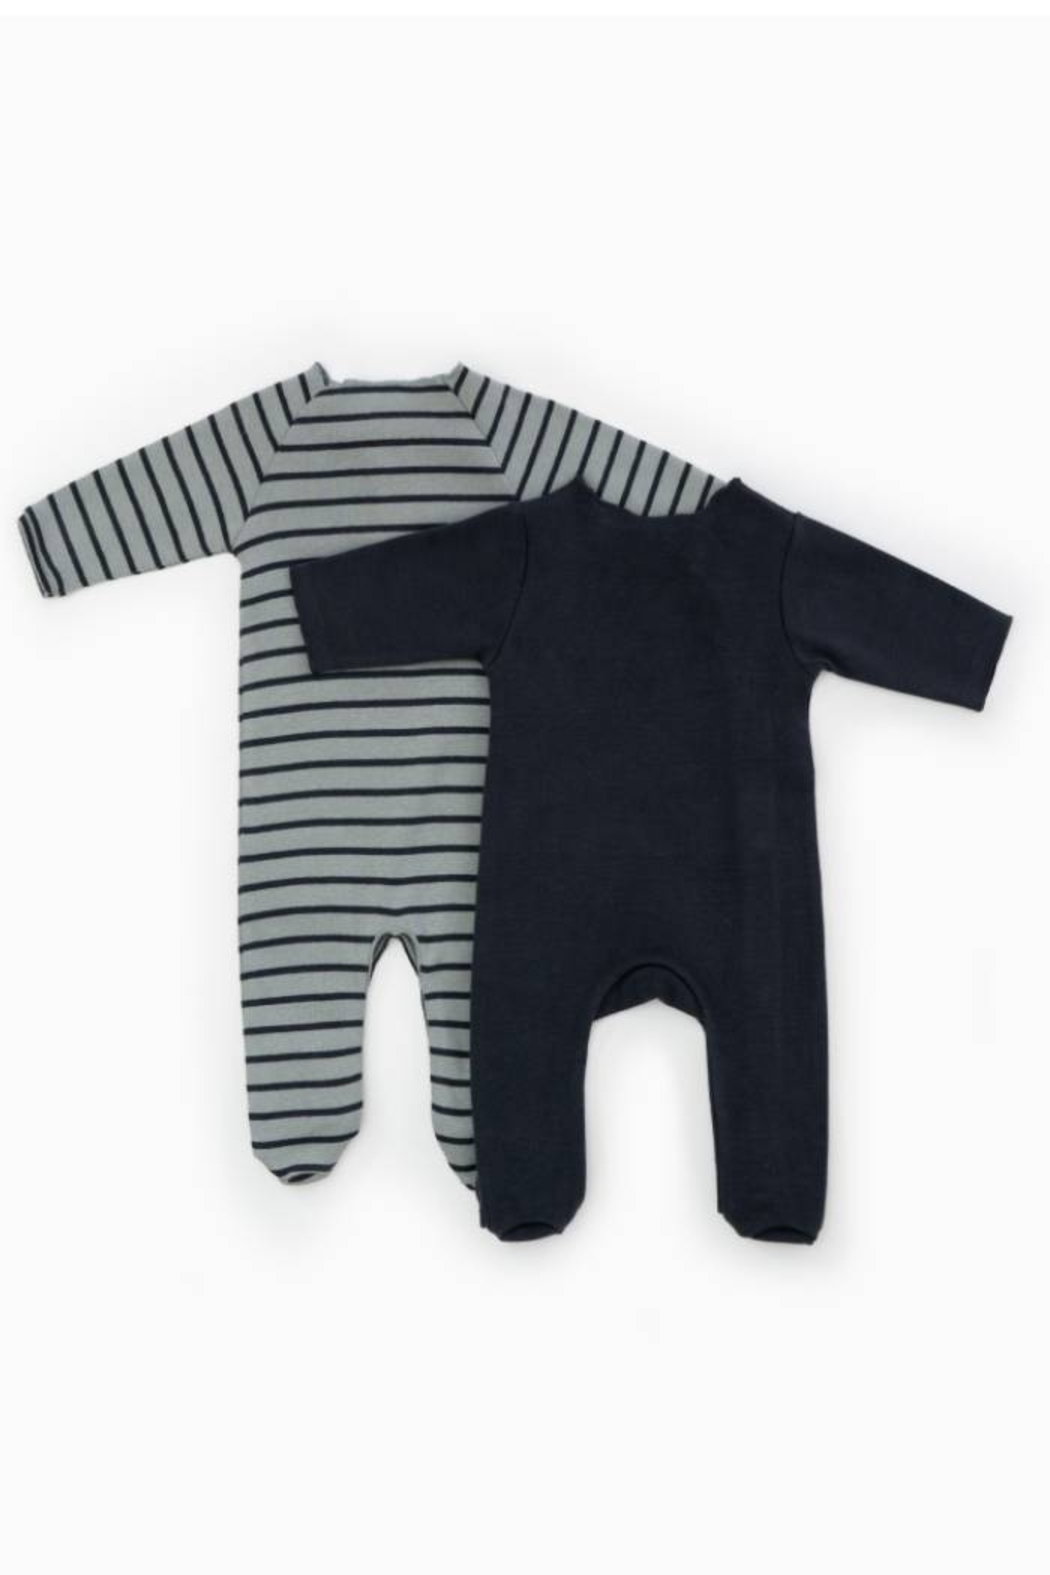 Play Up Organic Cotton Stripped Ribbed Baby Grow Set Footie (Pack of 2) - Front Full Image